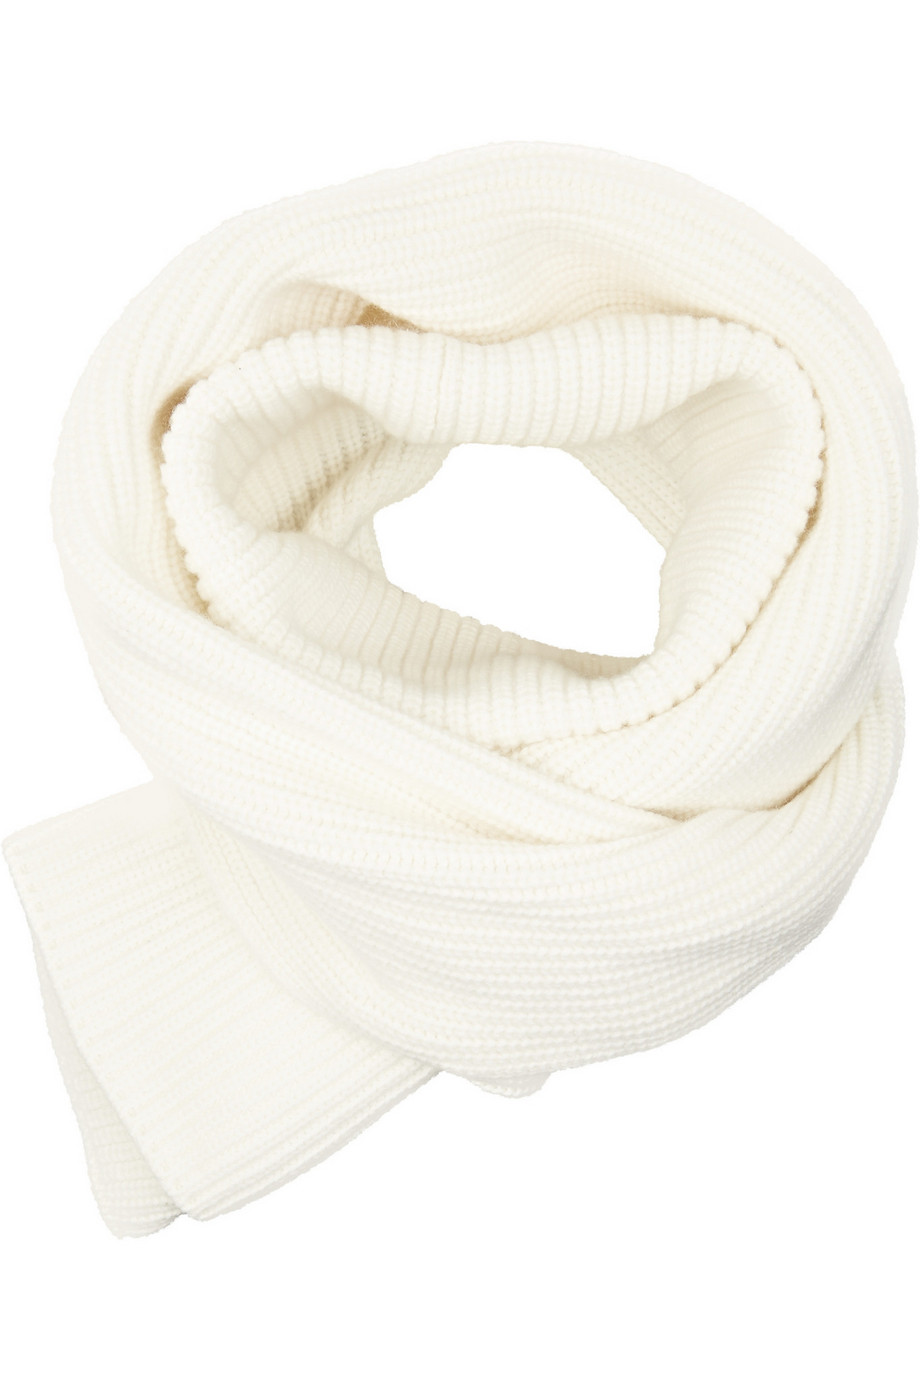 Rosetta Getty Ribbed Wool and Cashmere-Blend Scarf, White, Women's, Size: One size